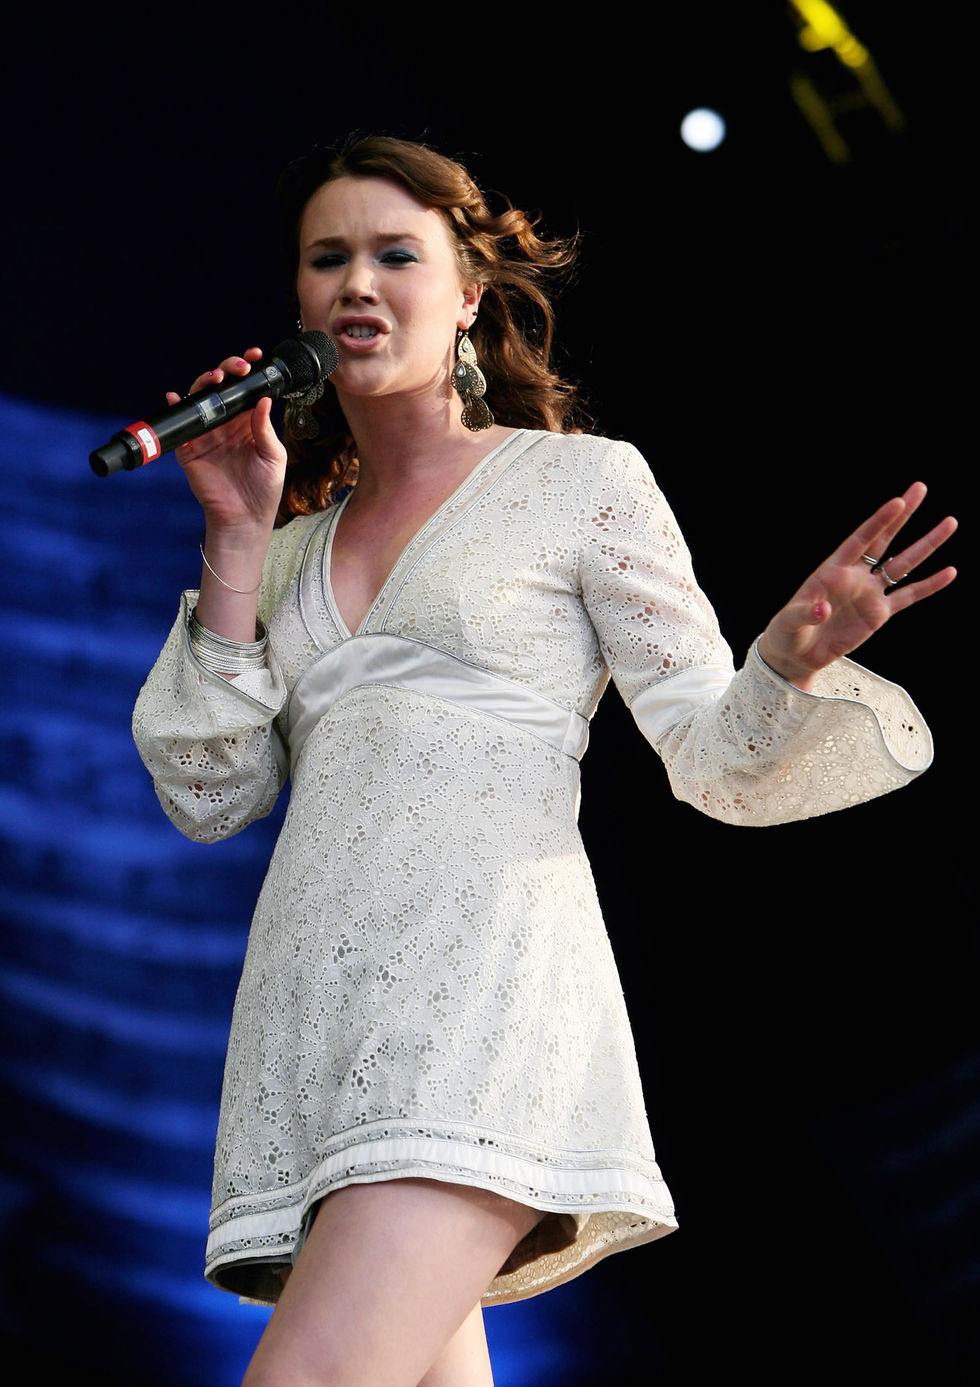 joss-stone-performs-at-andrew-lloyd-webbers-birthday-in-hyde-park-in-london-01